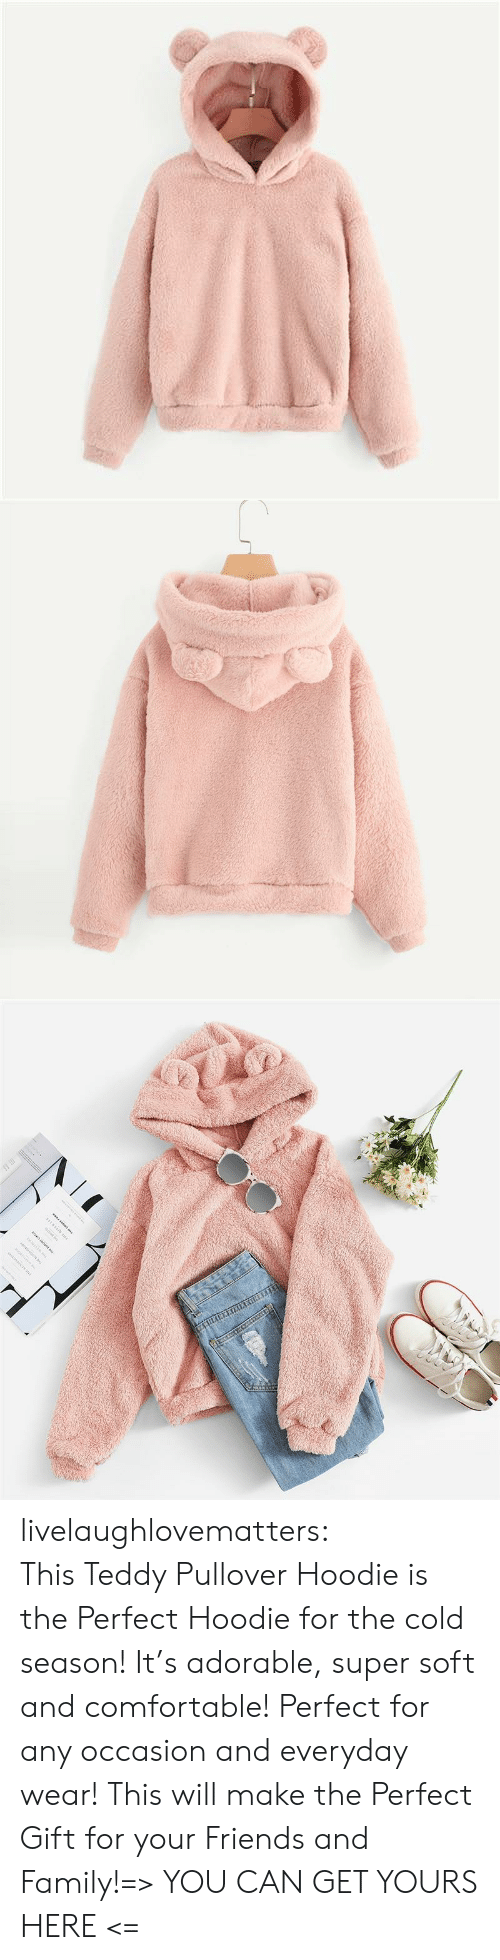 comfortable: www.w. livelaughlovematters:  ThisTeddy Pullover Hoodie is the Perfect Hoodie for the cold season! It's adorable, super soft and comfortable! Perfect for any occasion and everyday wear! This will make the Perfect Gift for your Friends and Family!=> YOU CAN GET YOURS HERE <=